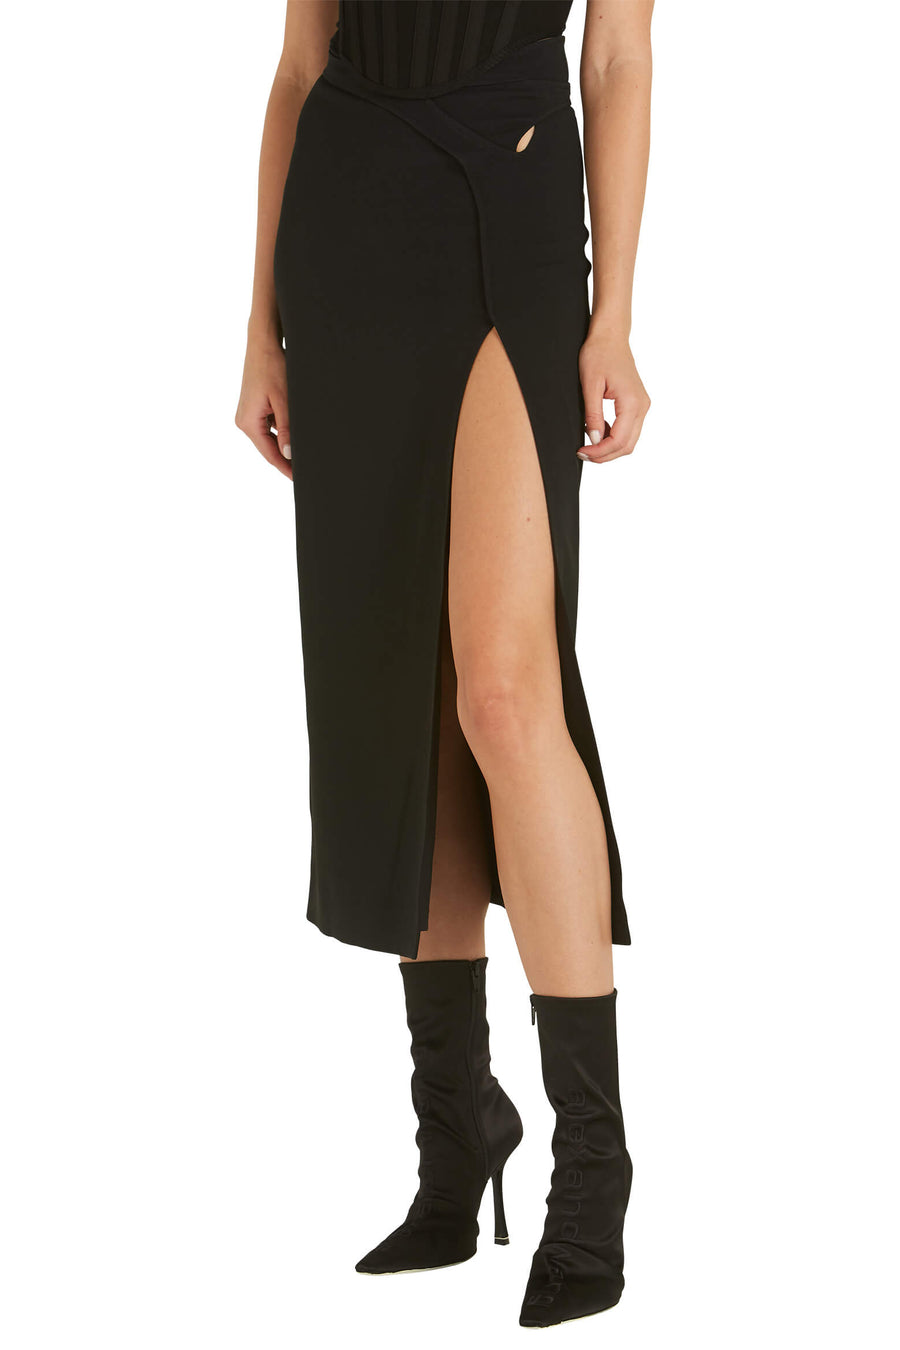 Dion Lee Interlock Skirt in Black from The New Trend